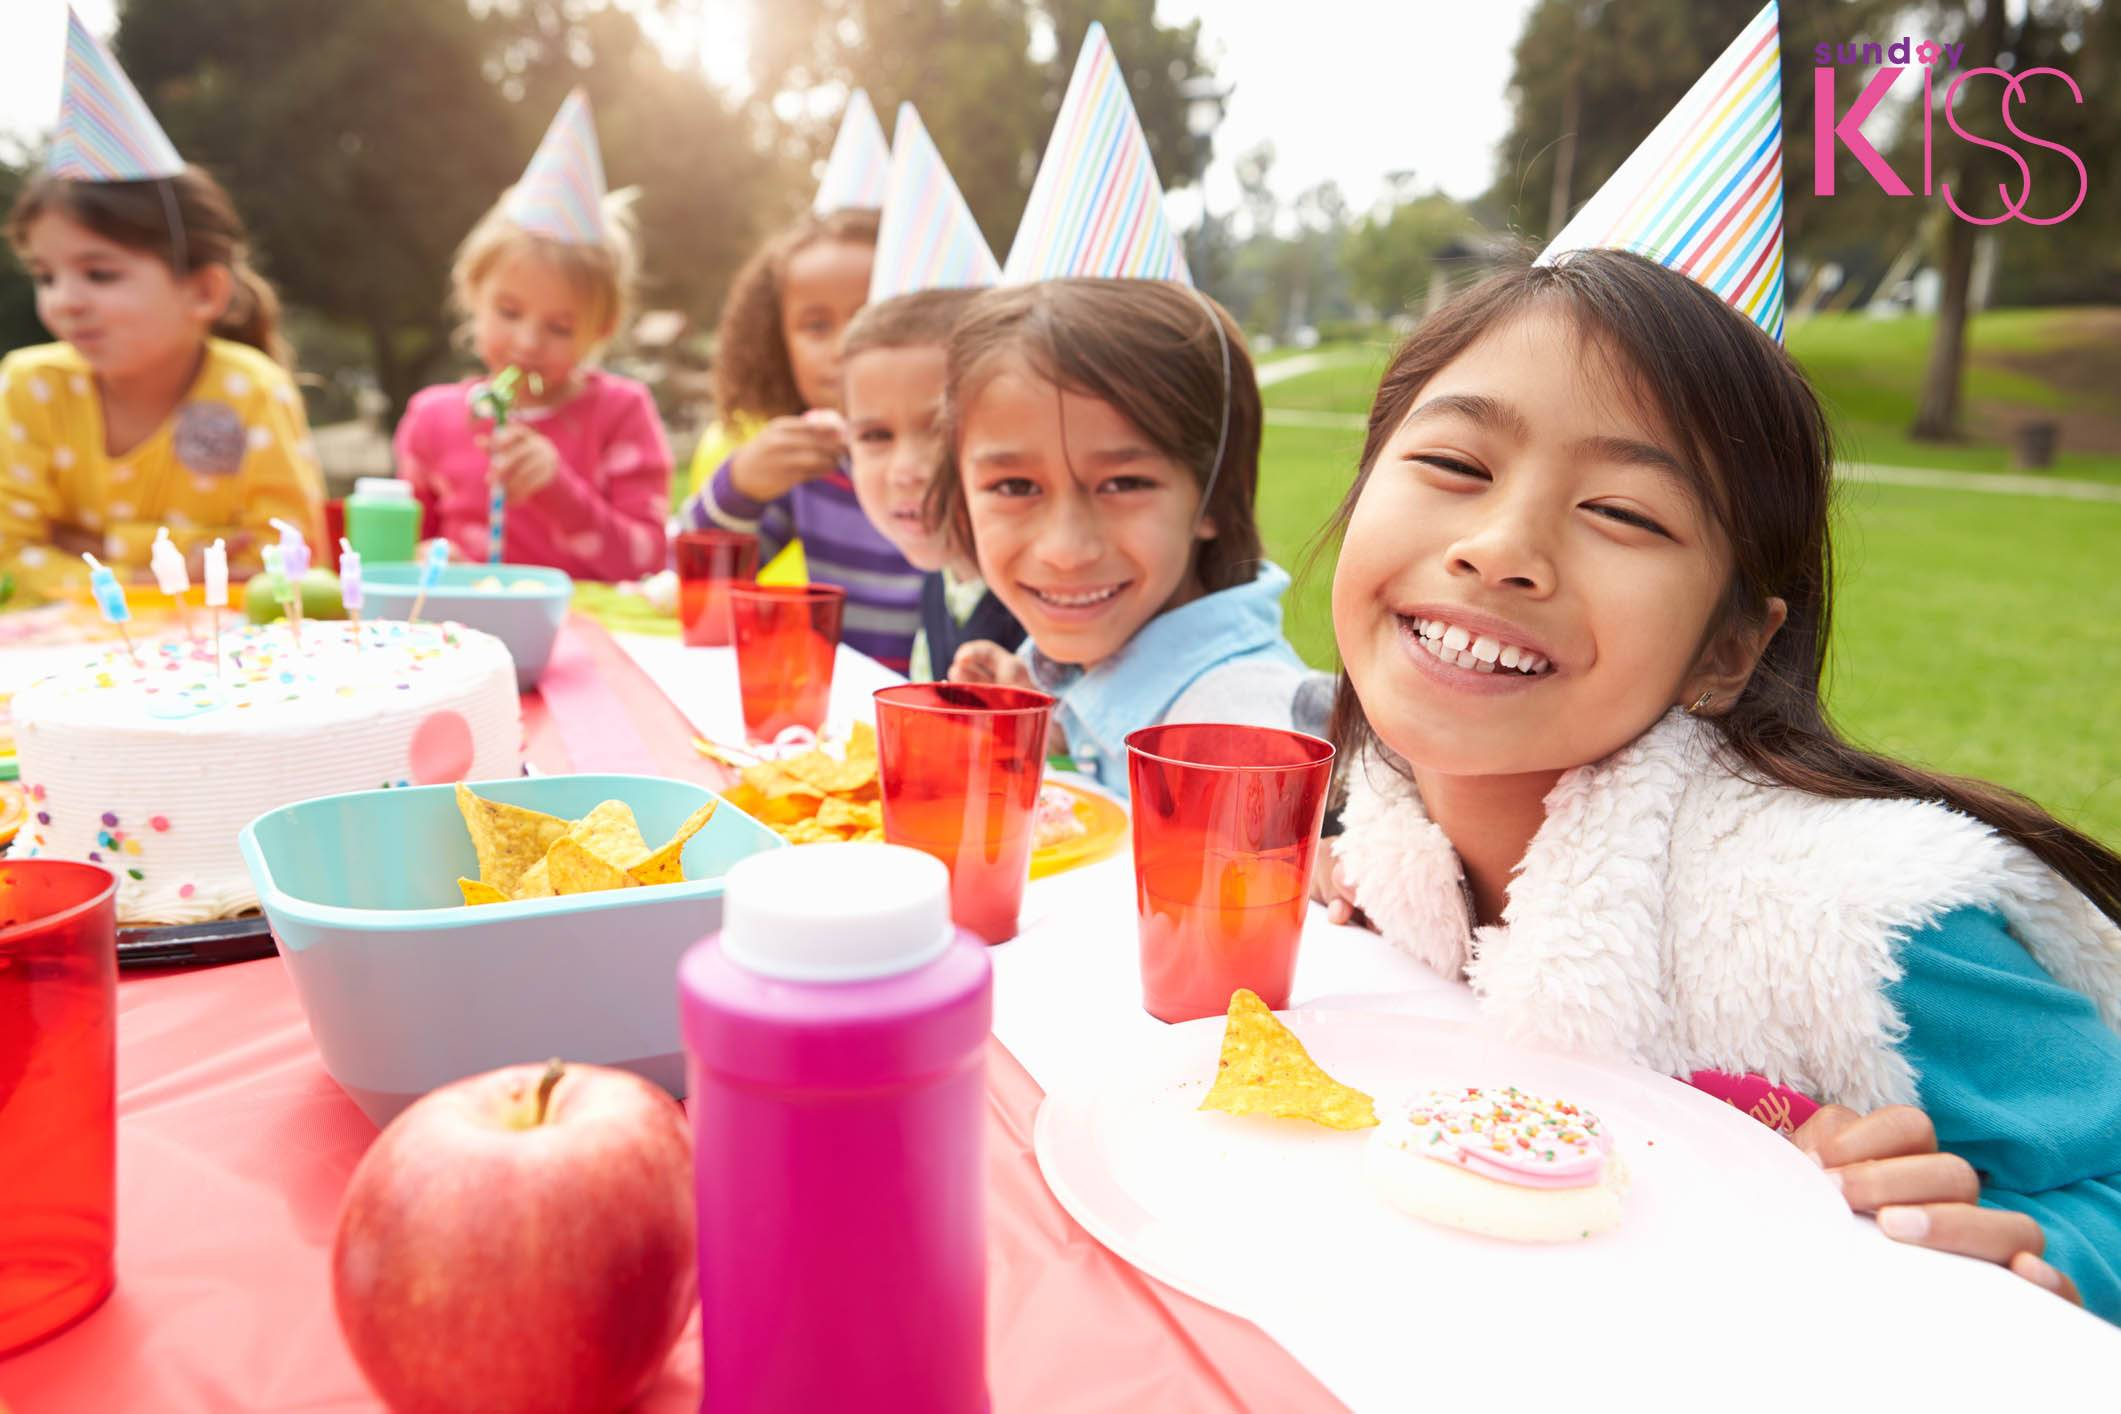 Group Of Children Having Outdoor Birthday Party Smiling Waering Party Hats